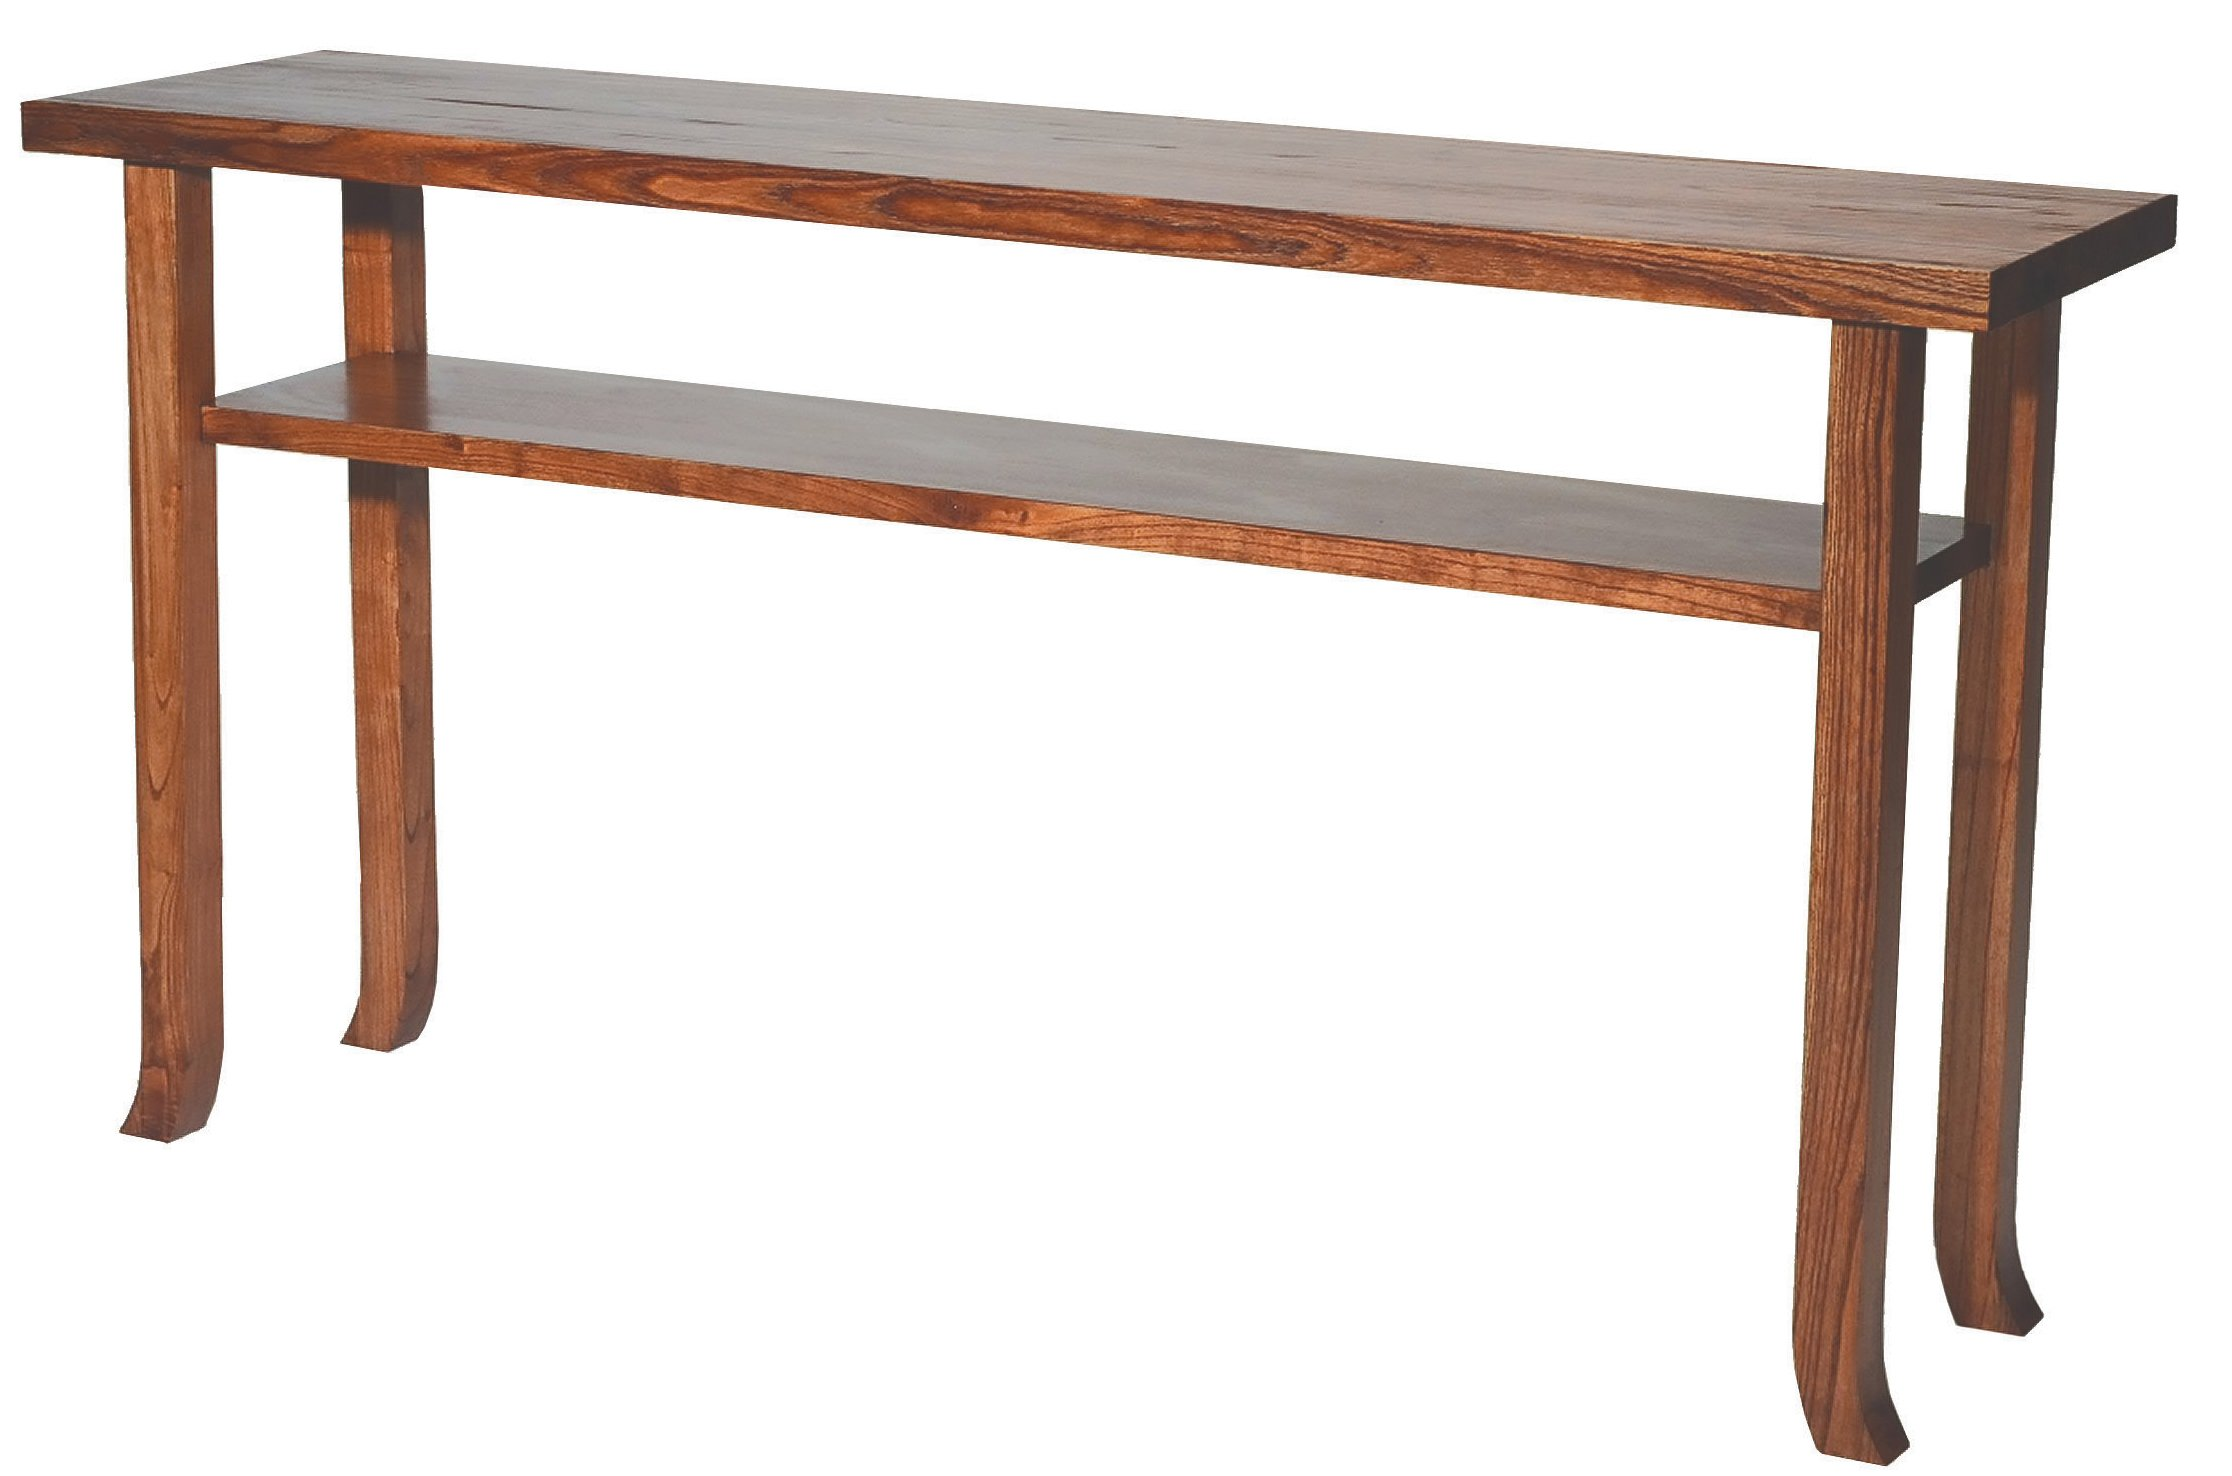 Access Designer Decor 15C-1012-D1 Sonoma Heights Console Table - Mahogany